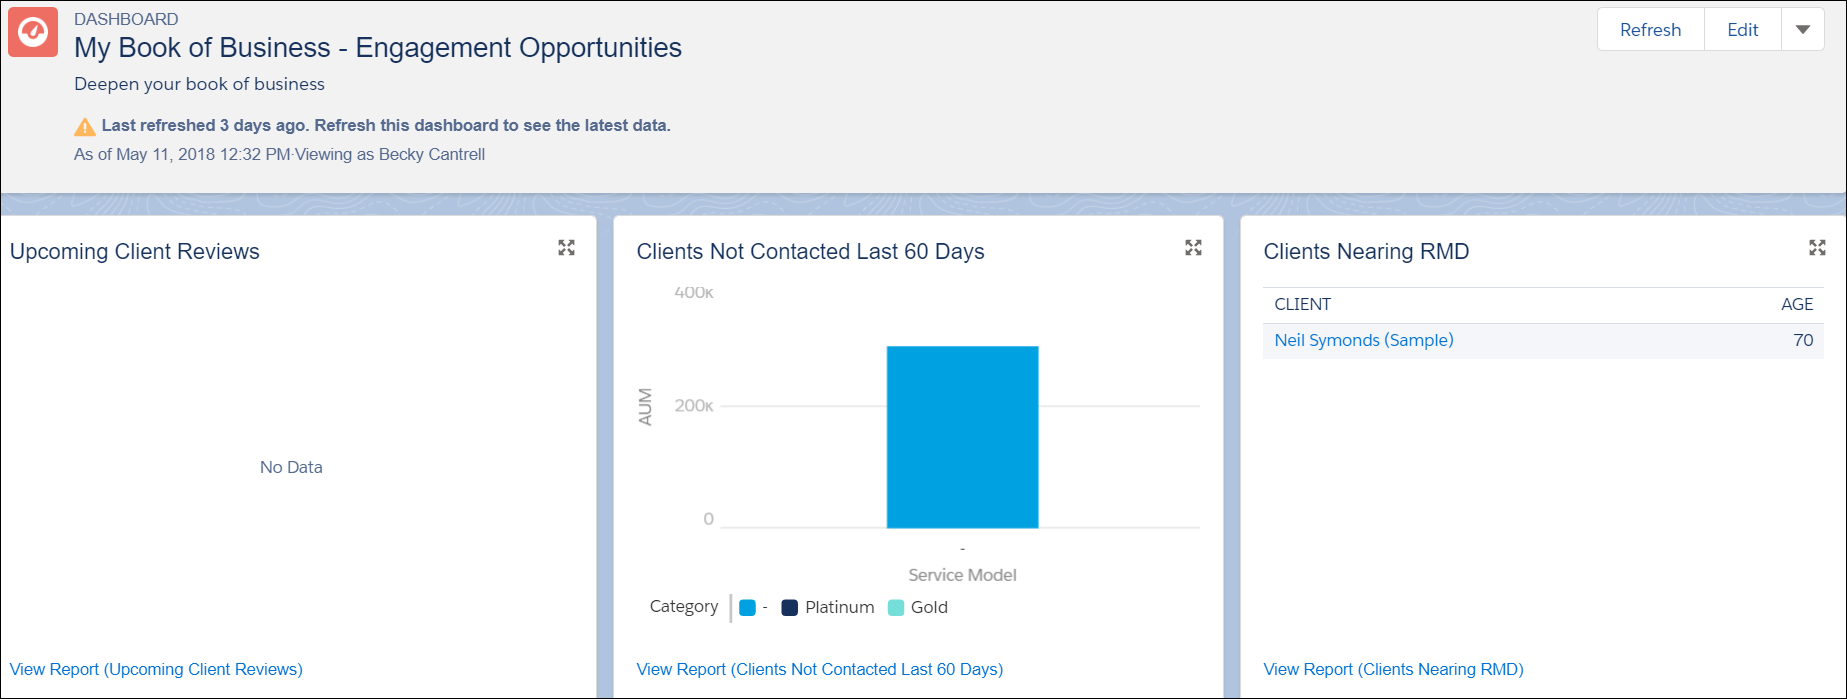 My Book of Business - Engagement Opportunities dashboard displaying upcoming client reviews, clients not contacted in the last 60 days, and clients nearing RMD